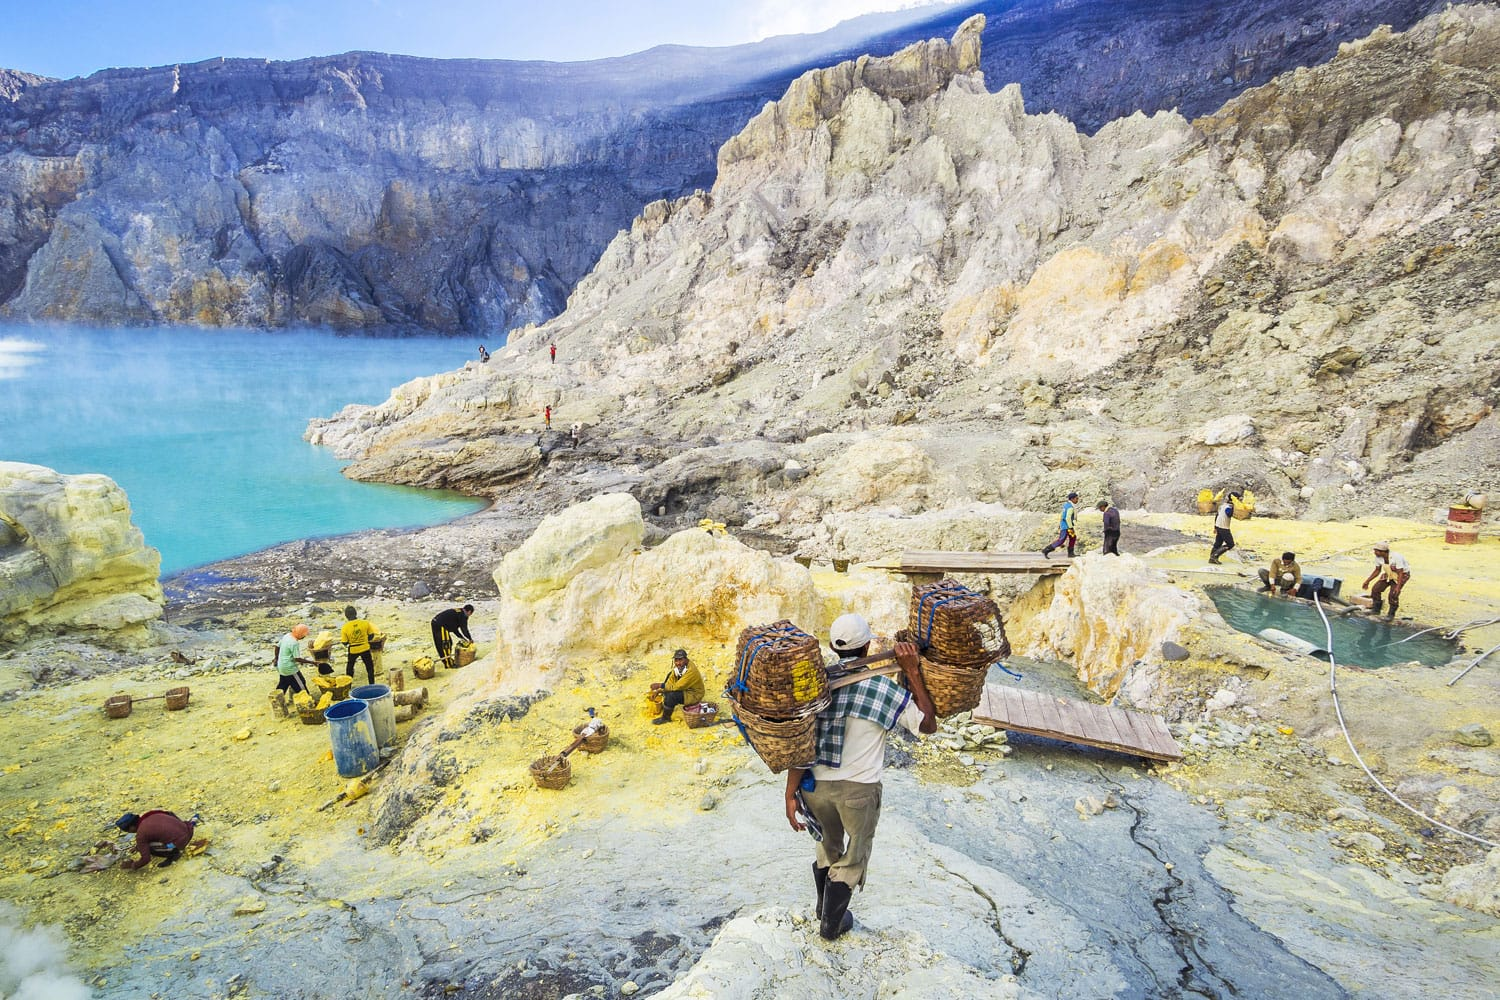 popular trekking destination in indonesia is ijen crater